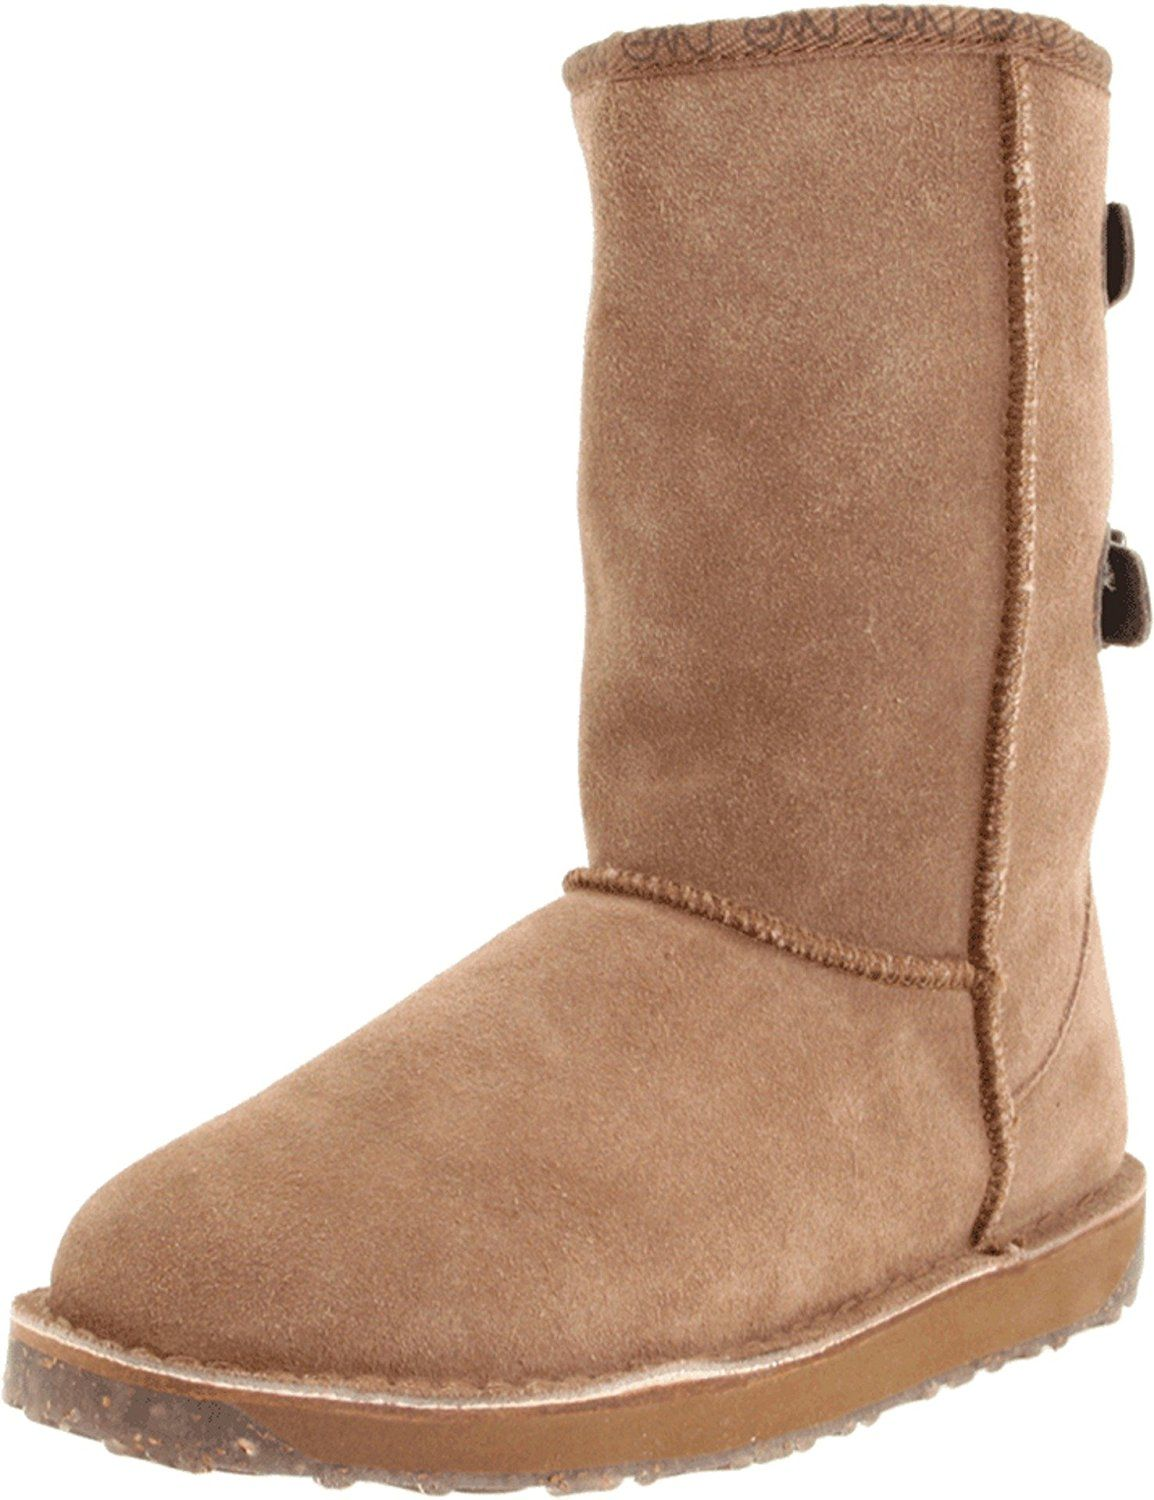 Women's Darlington Fashion Boot